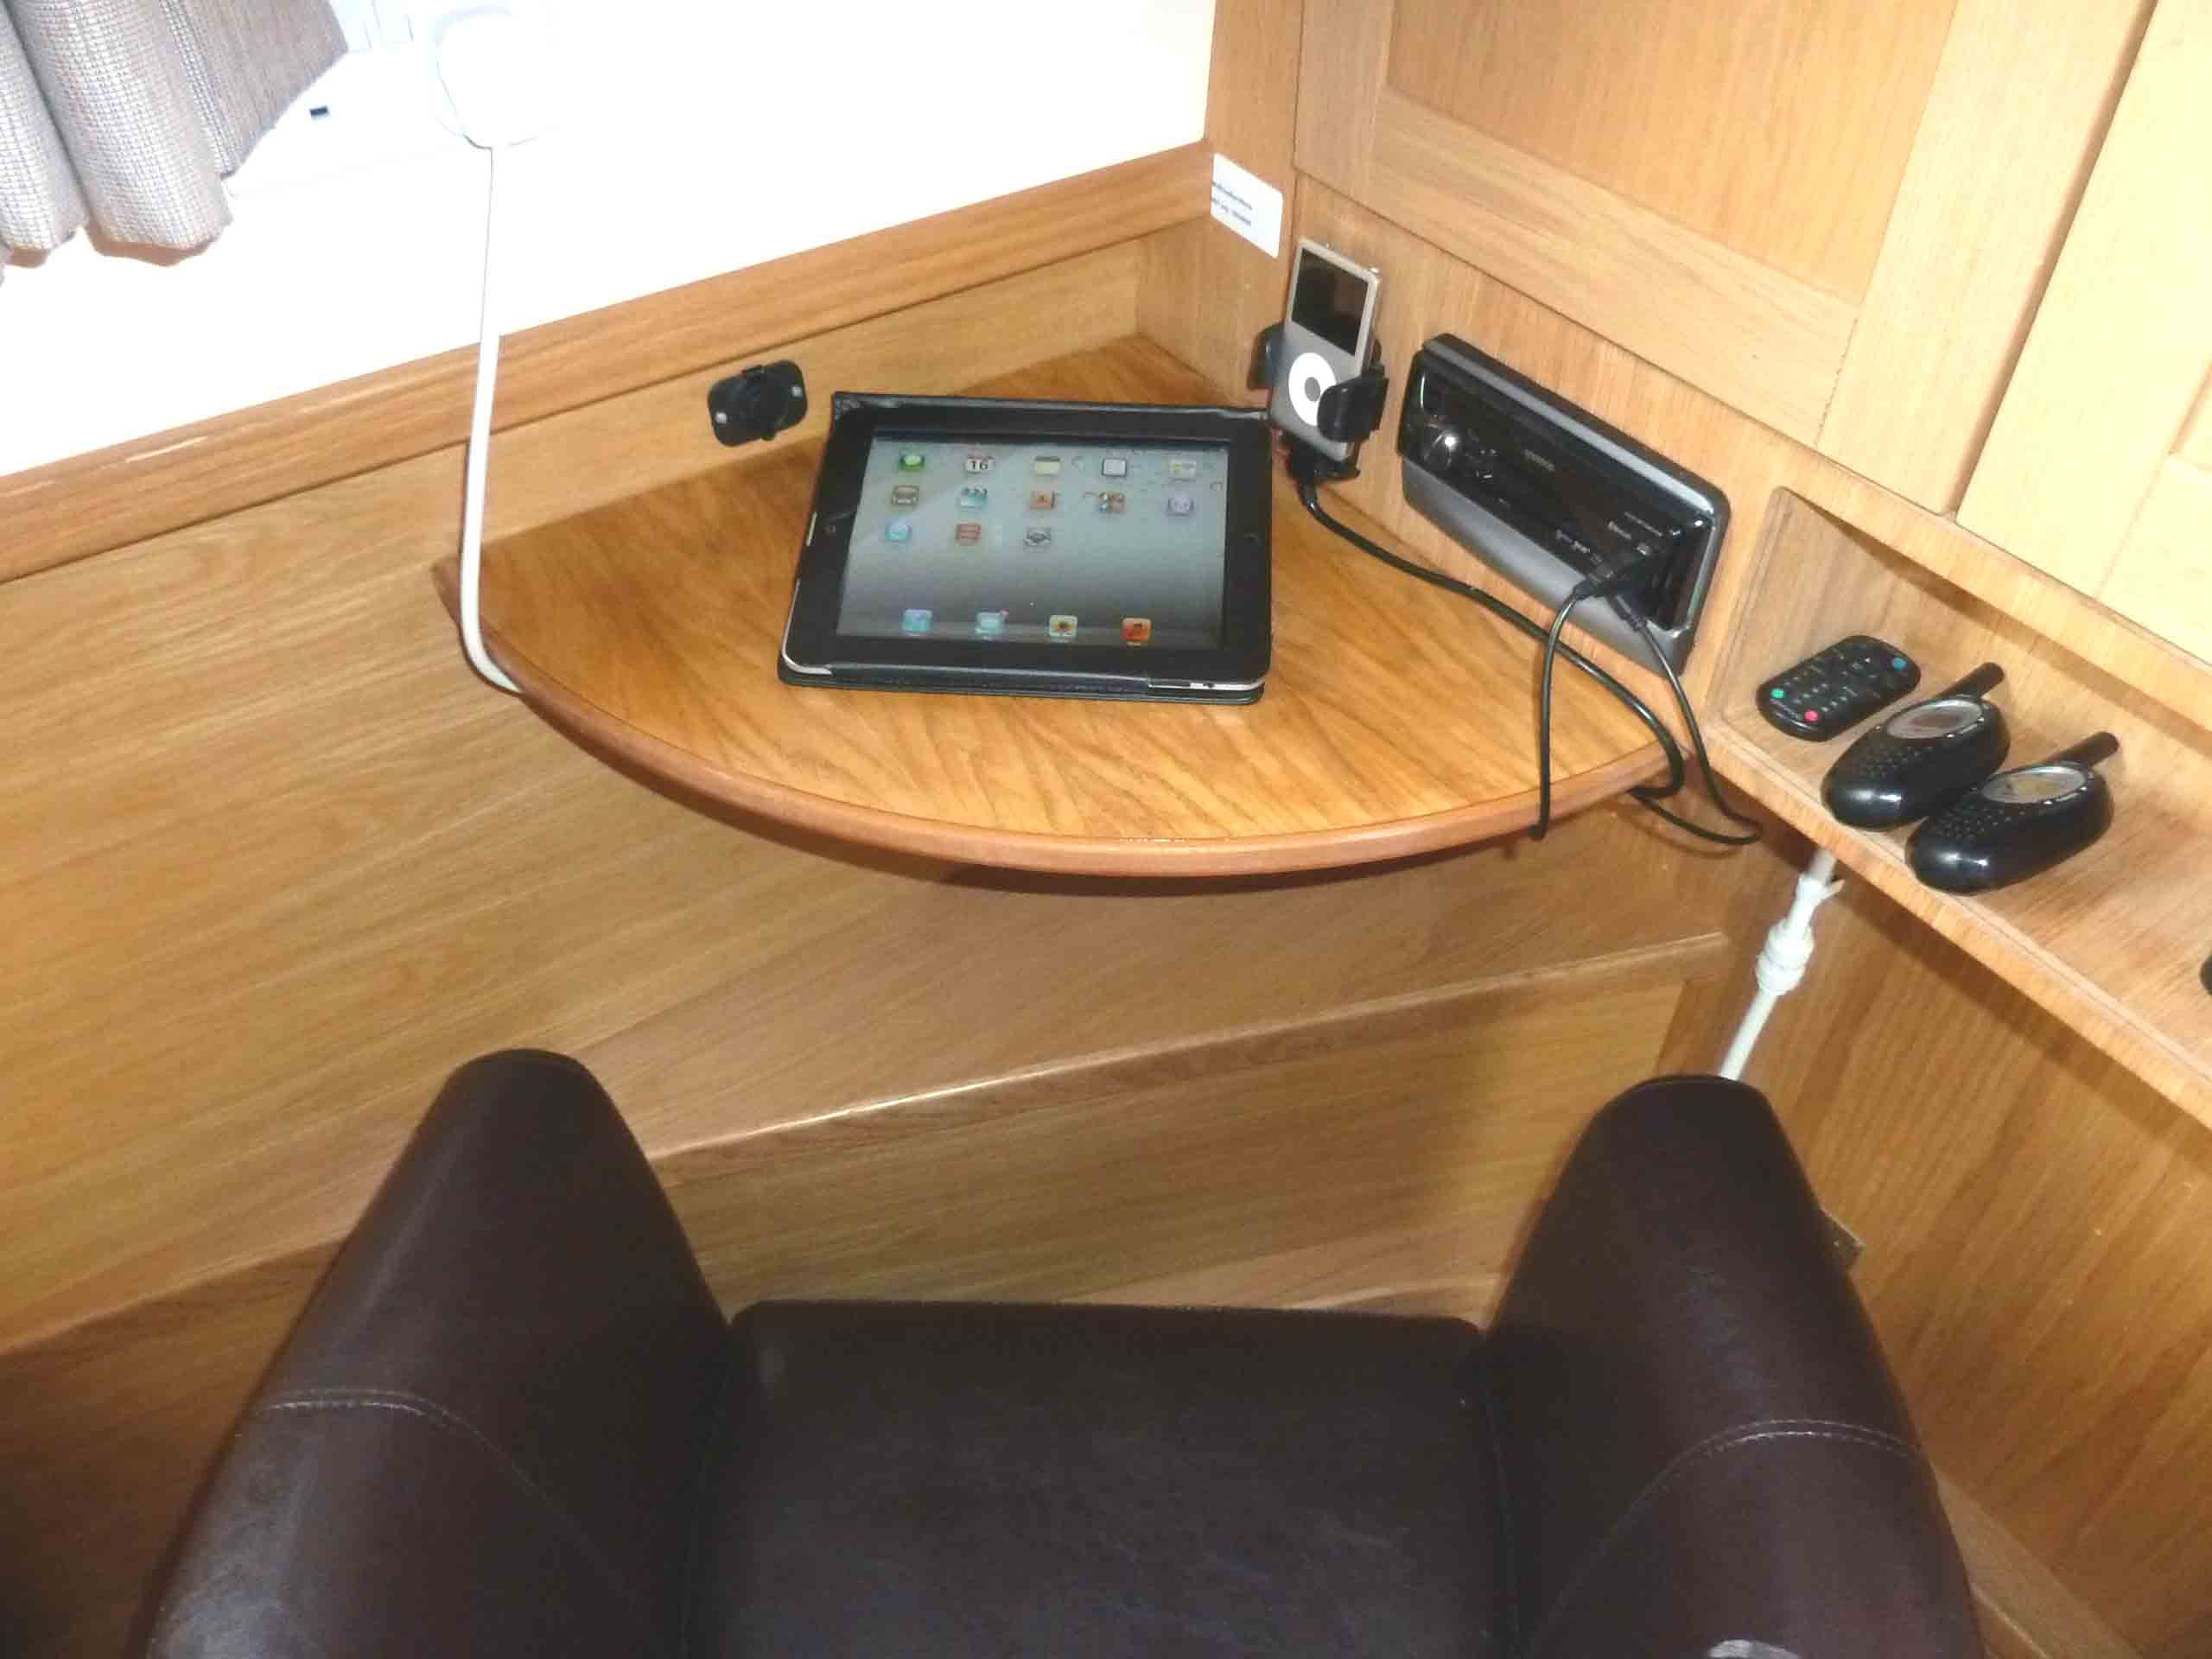 Boating holiday with WiFi